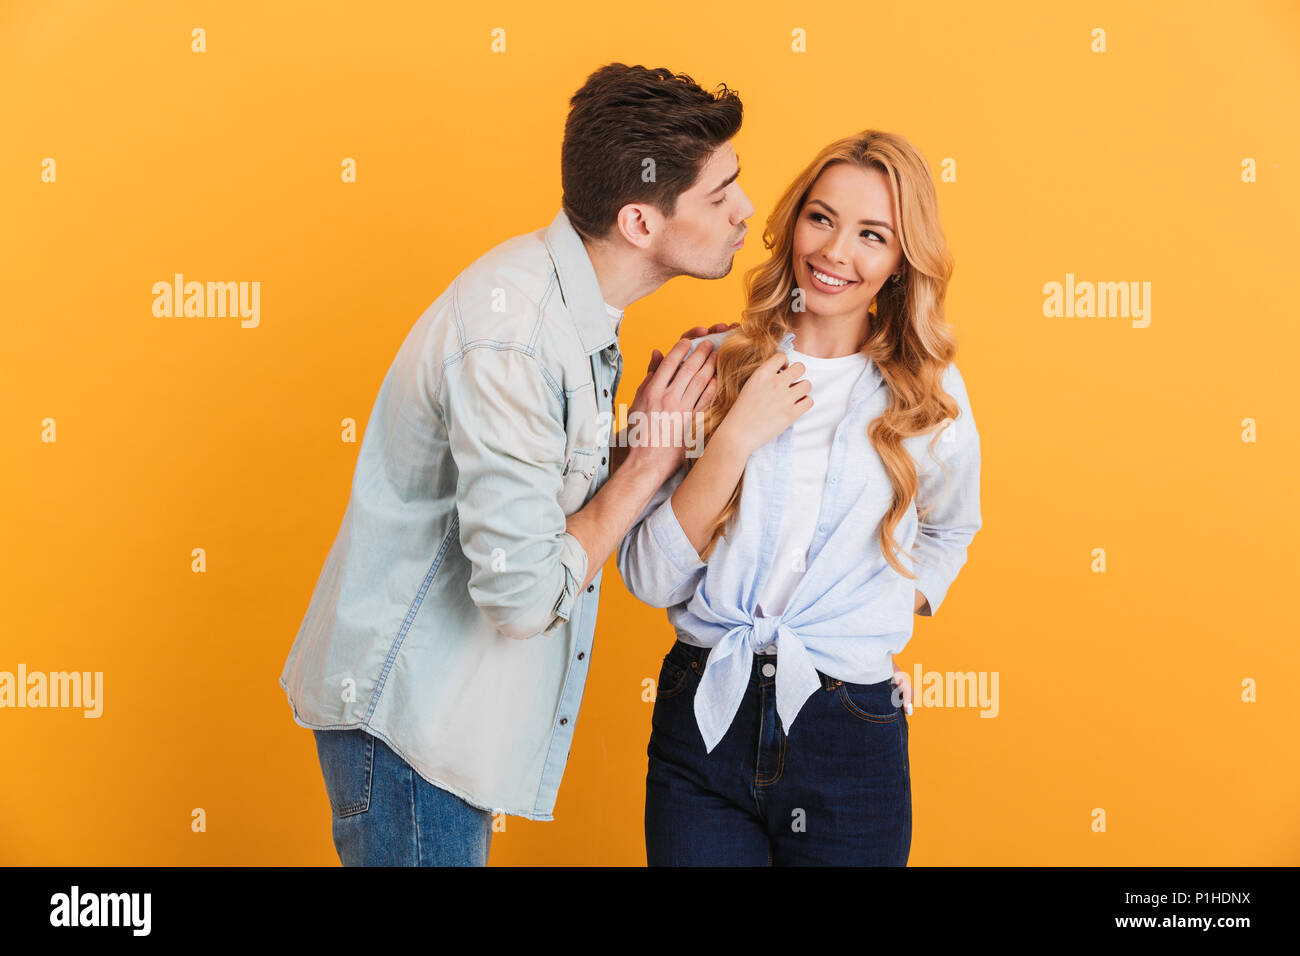 Image of young people wearing denim clothing in relationship expressing love and affection while man kissing woman on cheek isolated over yellow backg - Stock Image